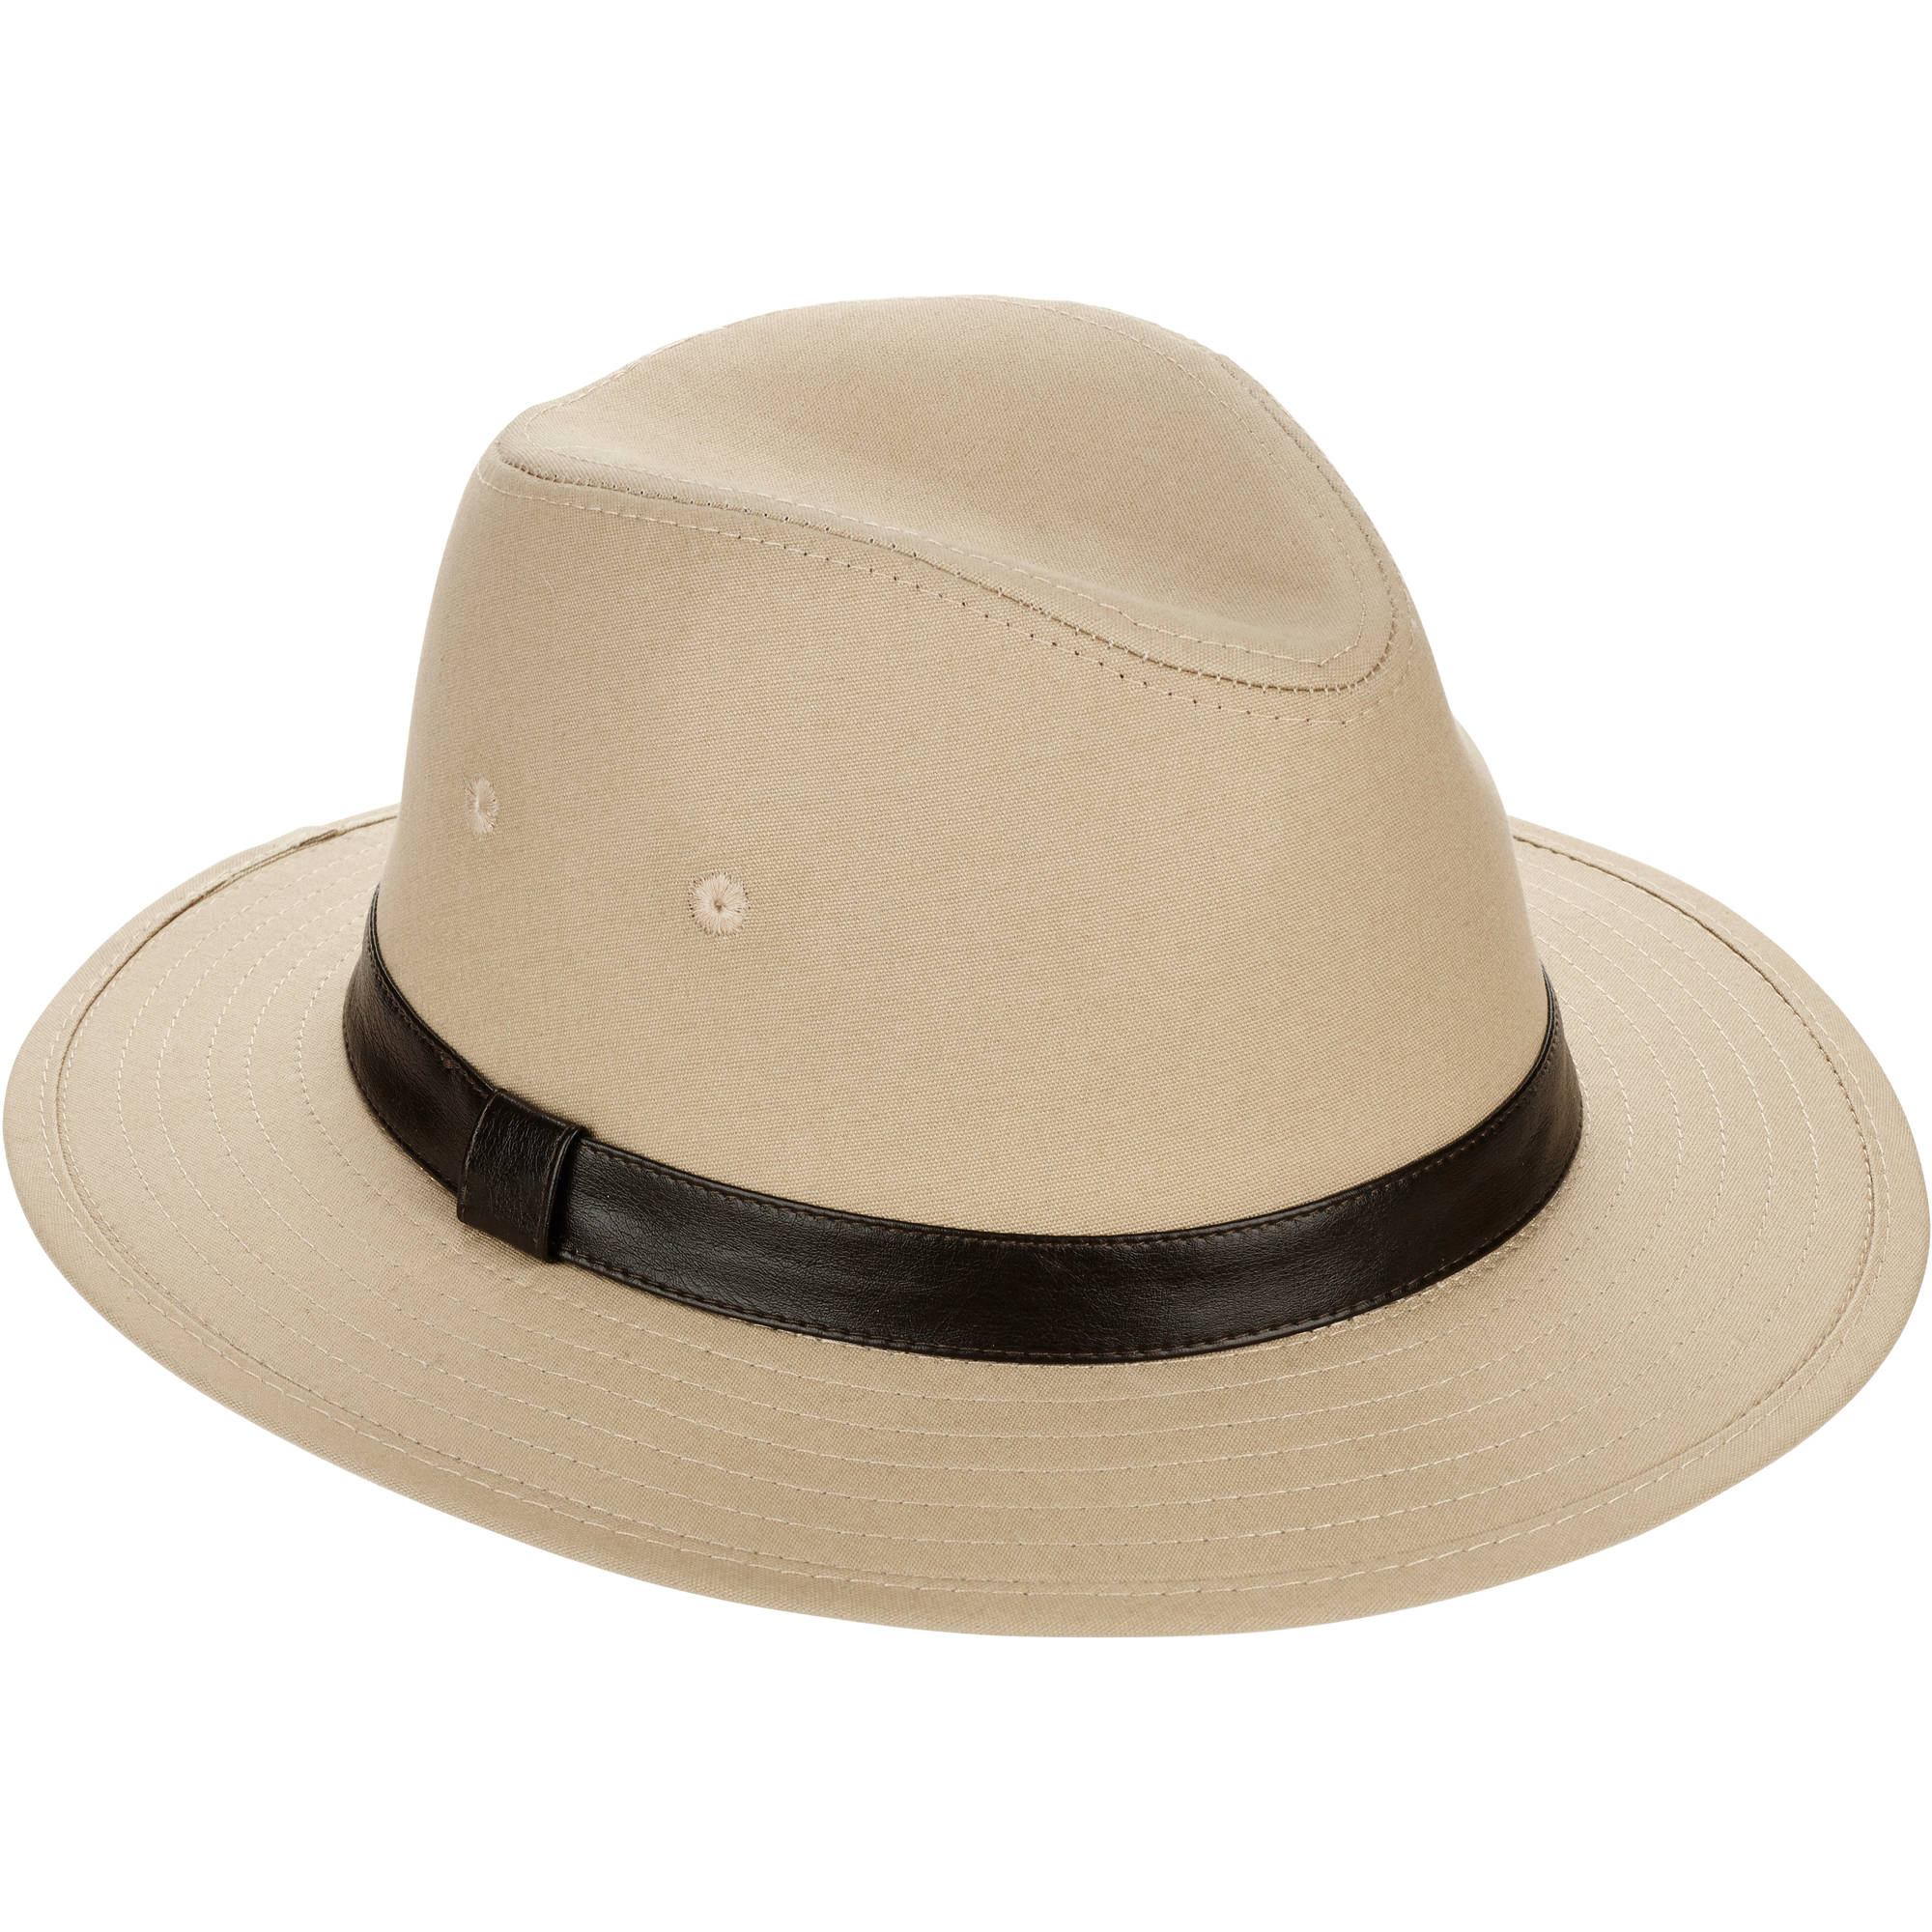 1cb6afc94e5a0 Sun Protection Zone - Kids UPF 50+ Safari Sun Hat - Blue Shark - Walmart.com